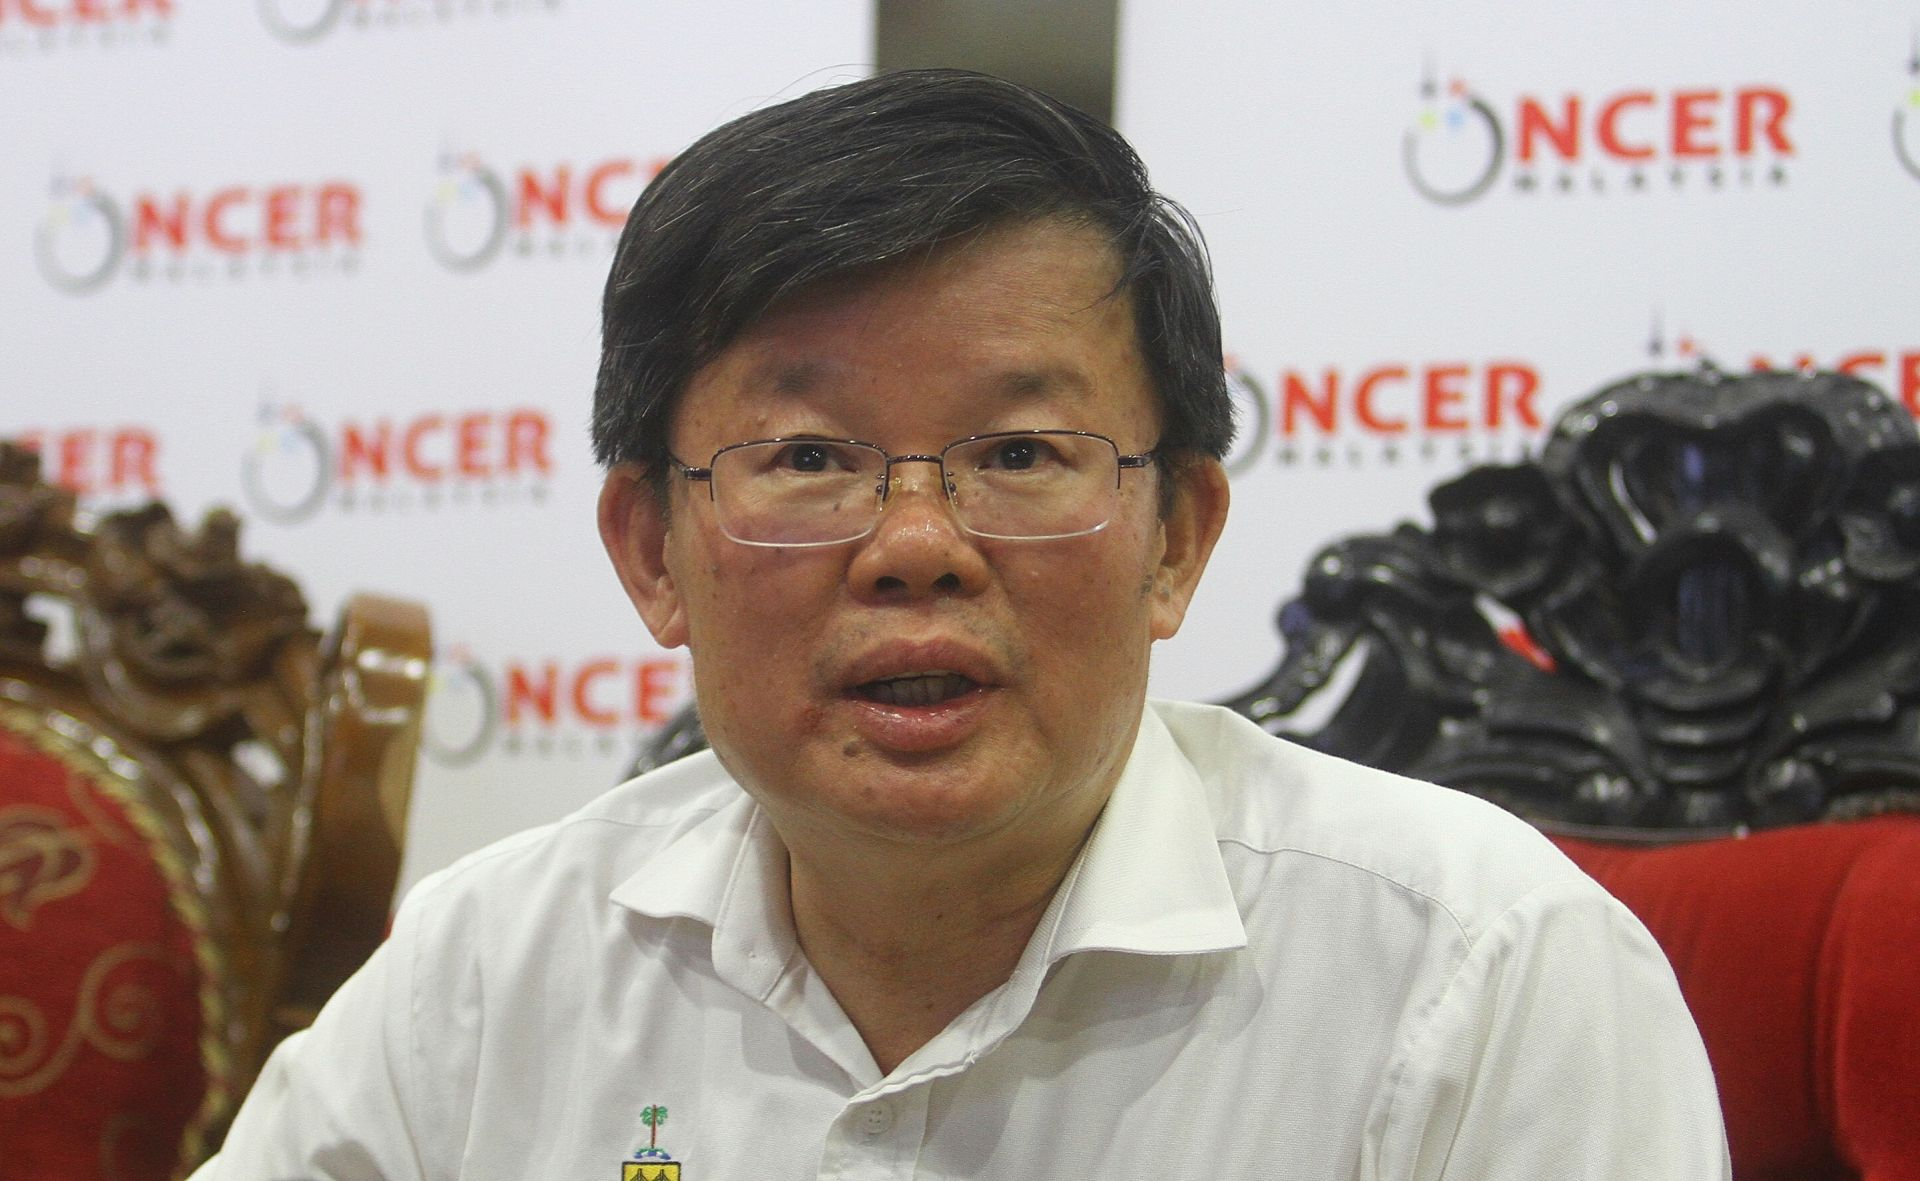 Analyse Tanjung Piai by-election results and take action, says Penang CM